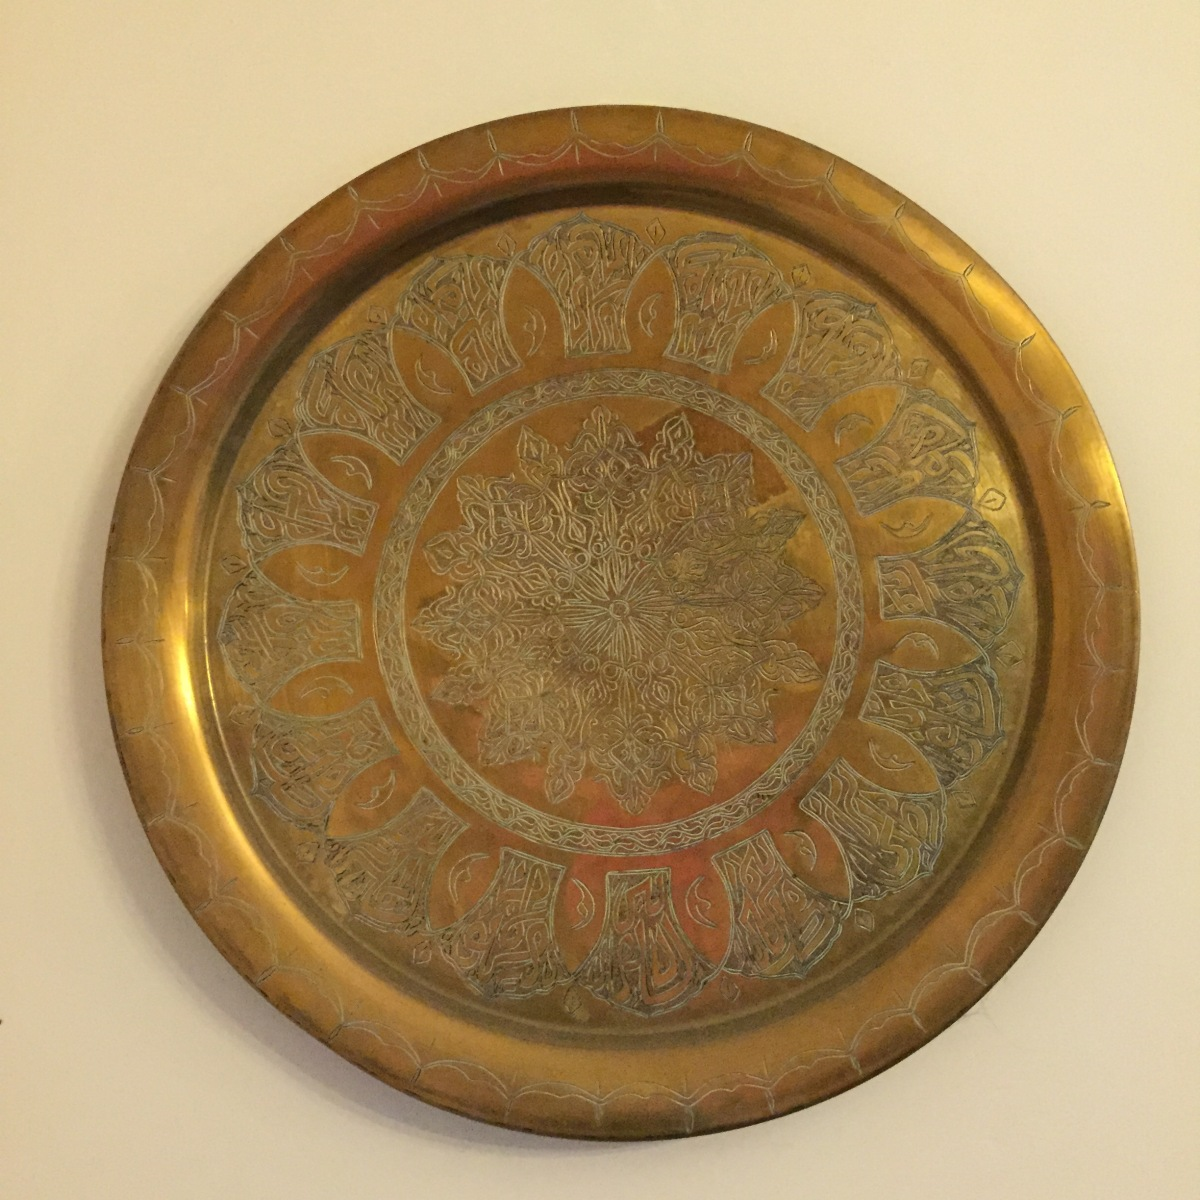 A photo of a beautiful wall mounted dish or plate, possibly brass